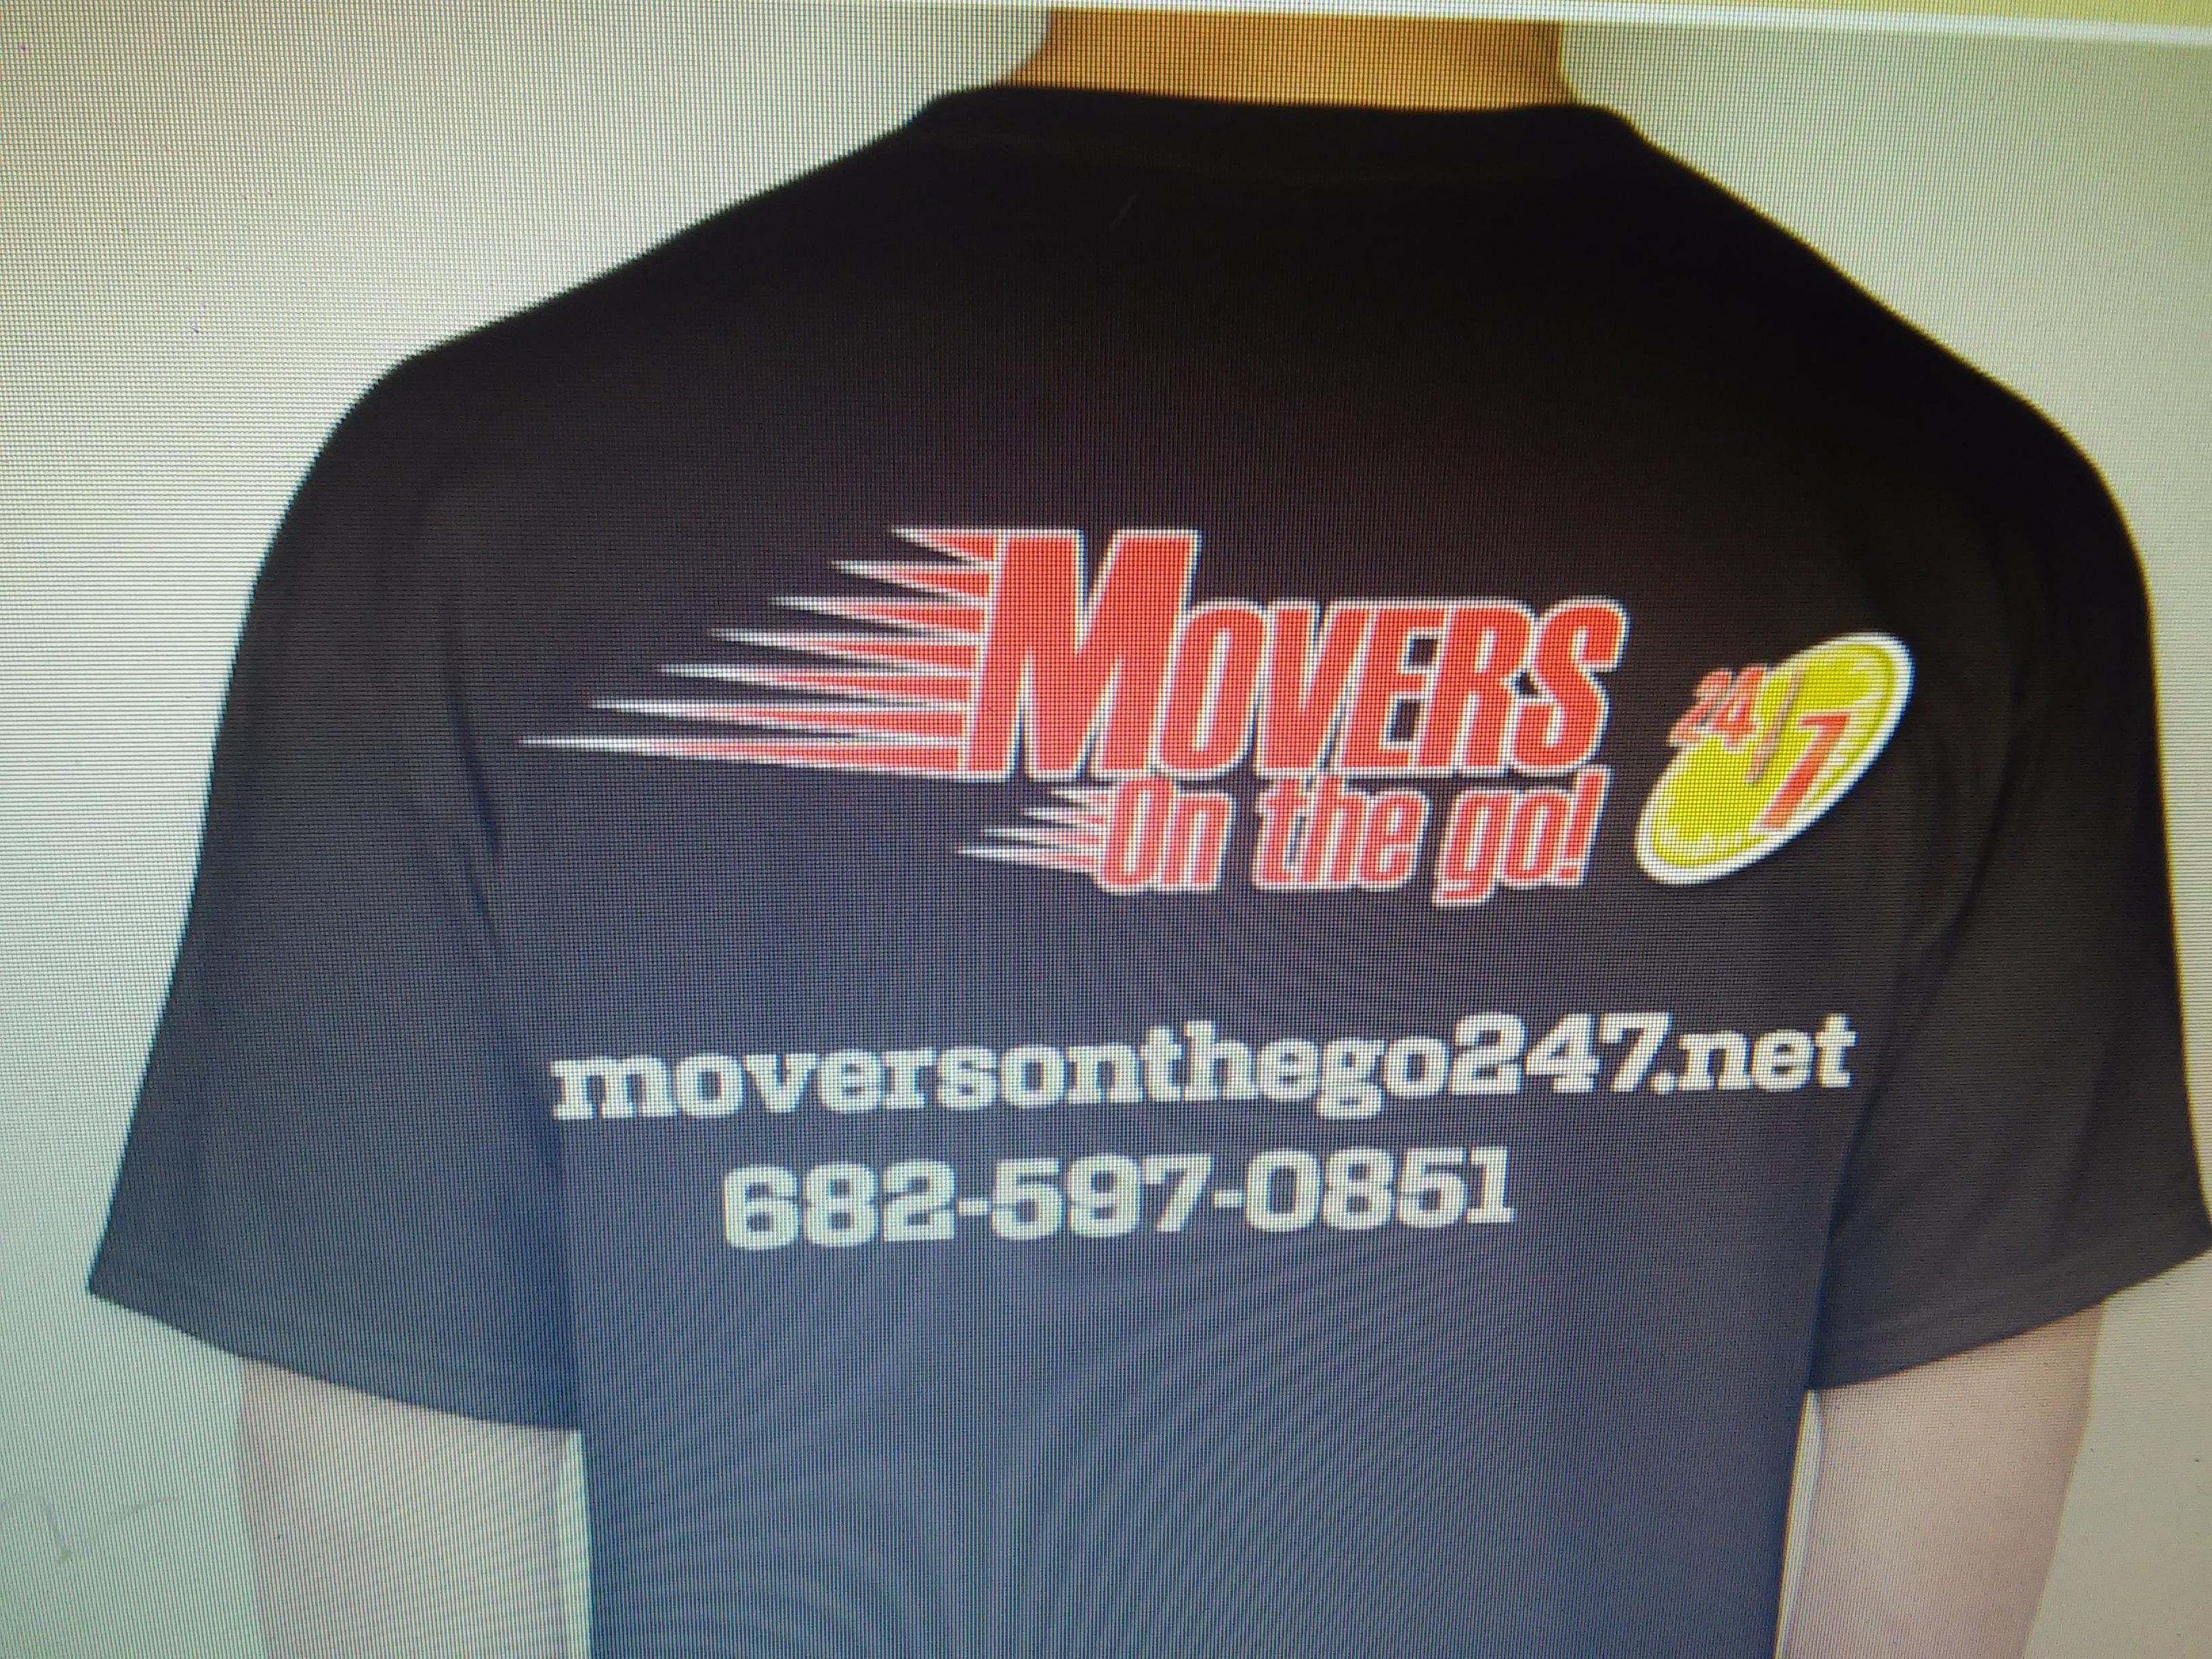 Movers on the Go 24/7 image 2